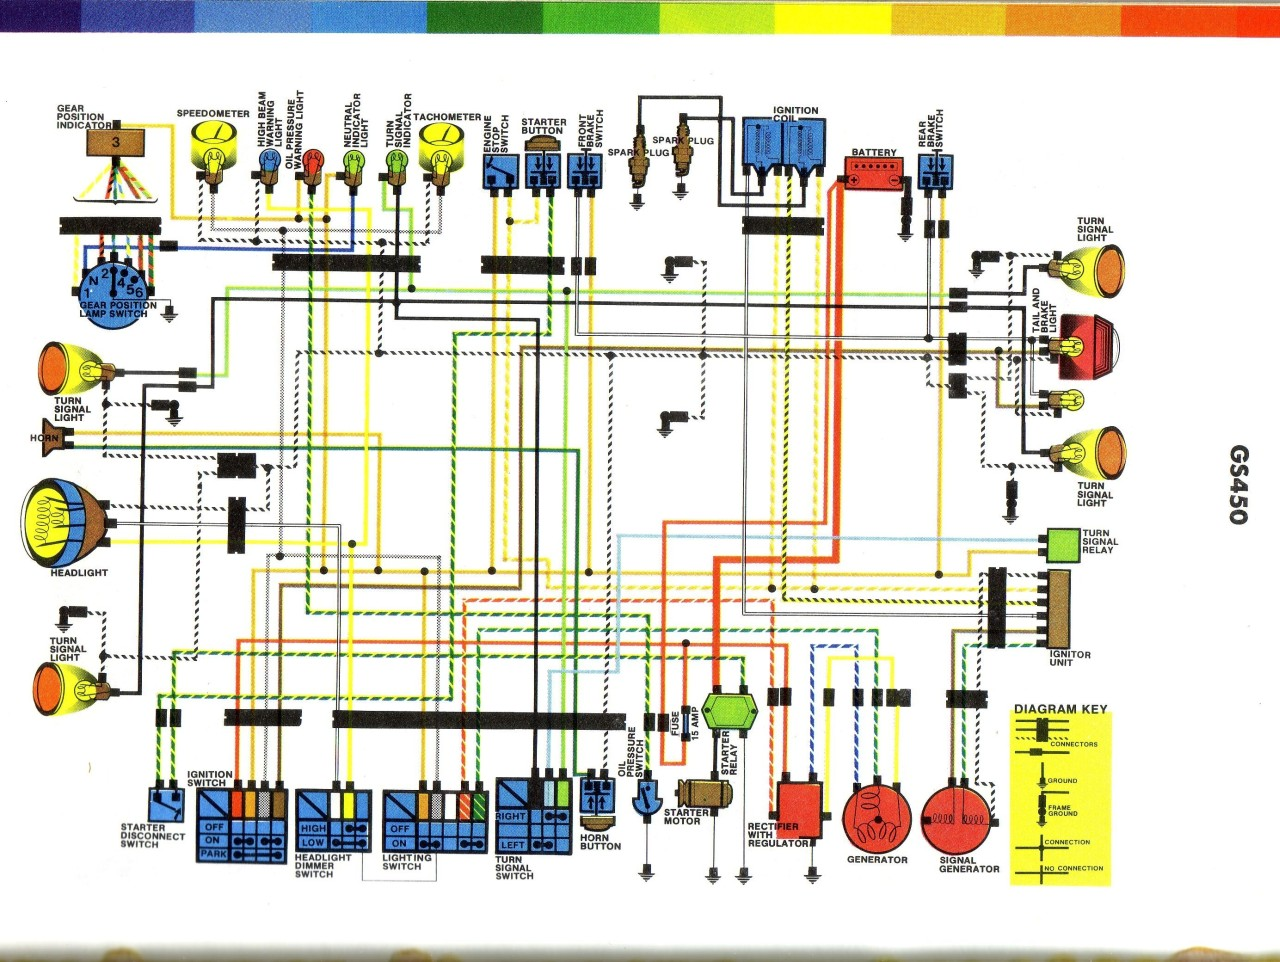 1982 suzuki gs550 wiring diagram 3 way switch diagrams multiple lights gs 450 tools